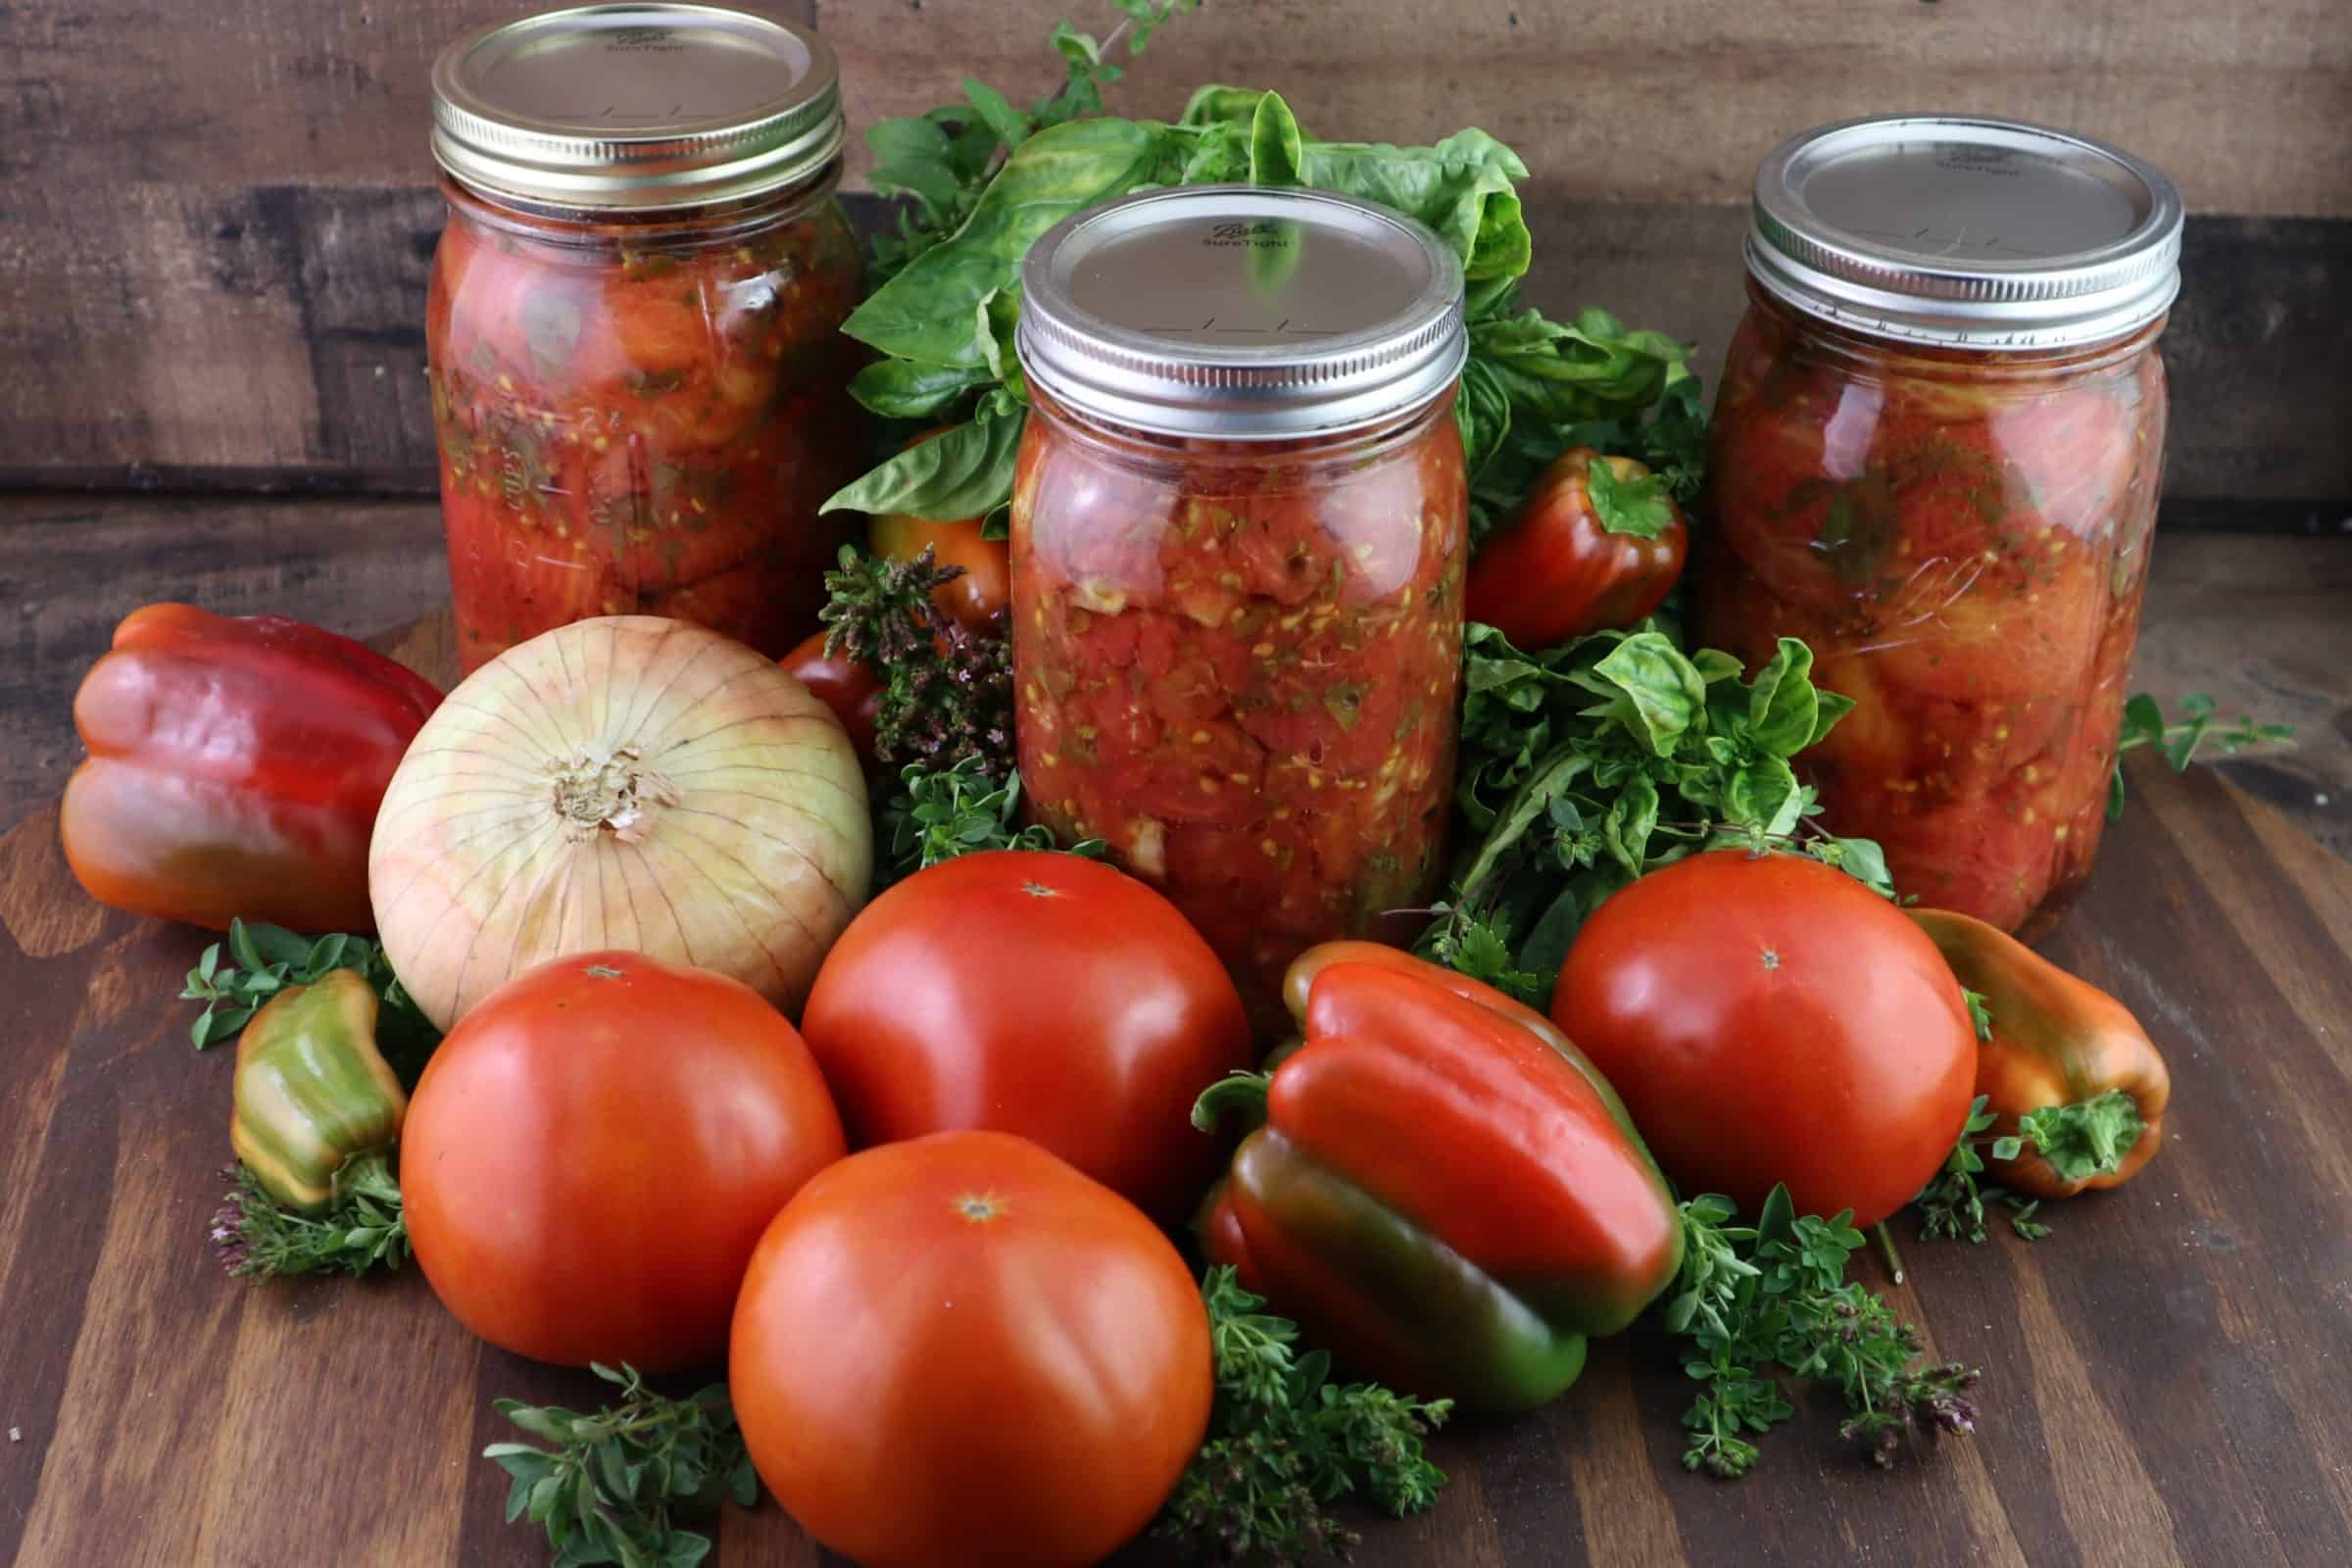 You are currently viewing Canning Stewed Tomatoes